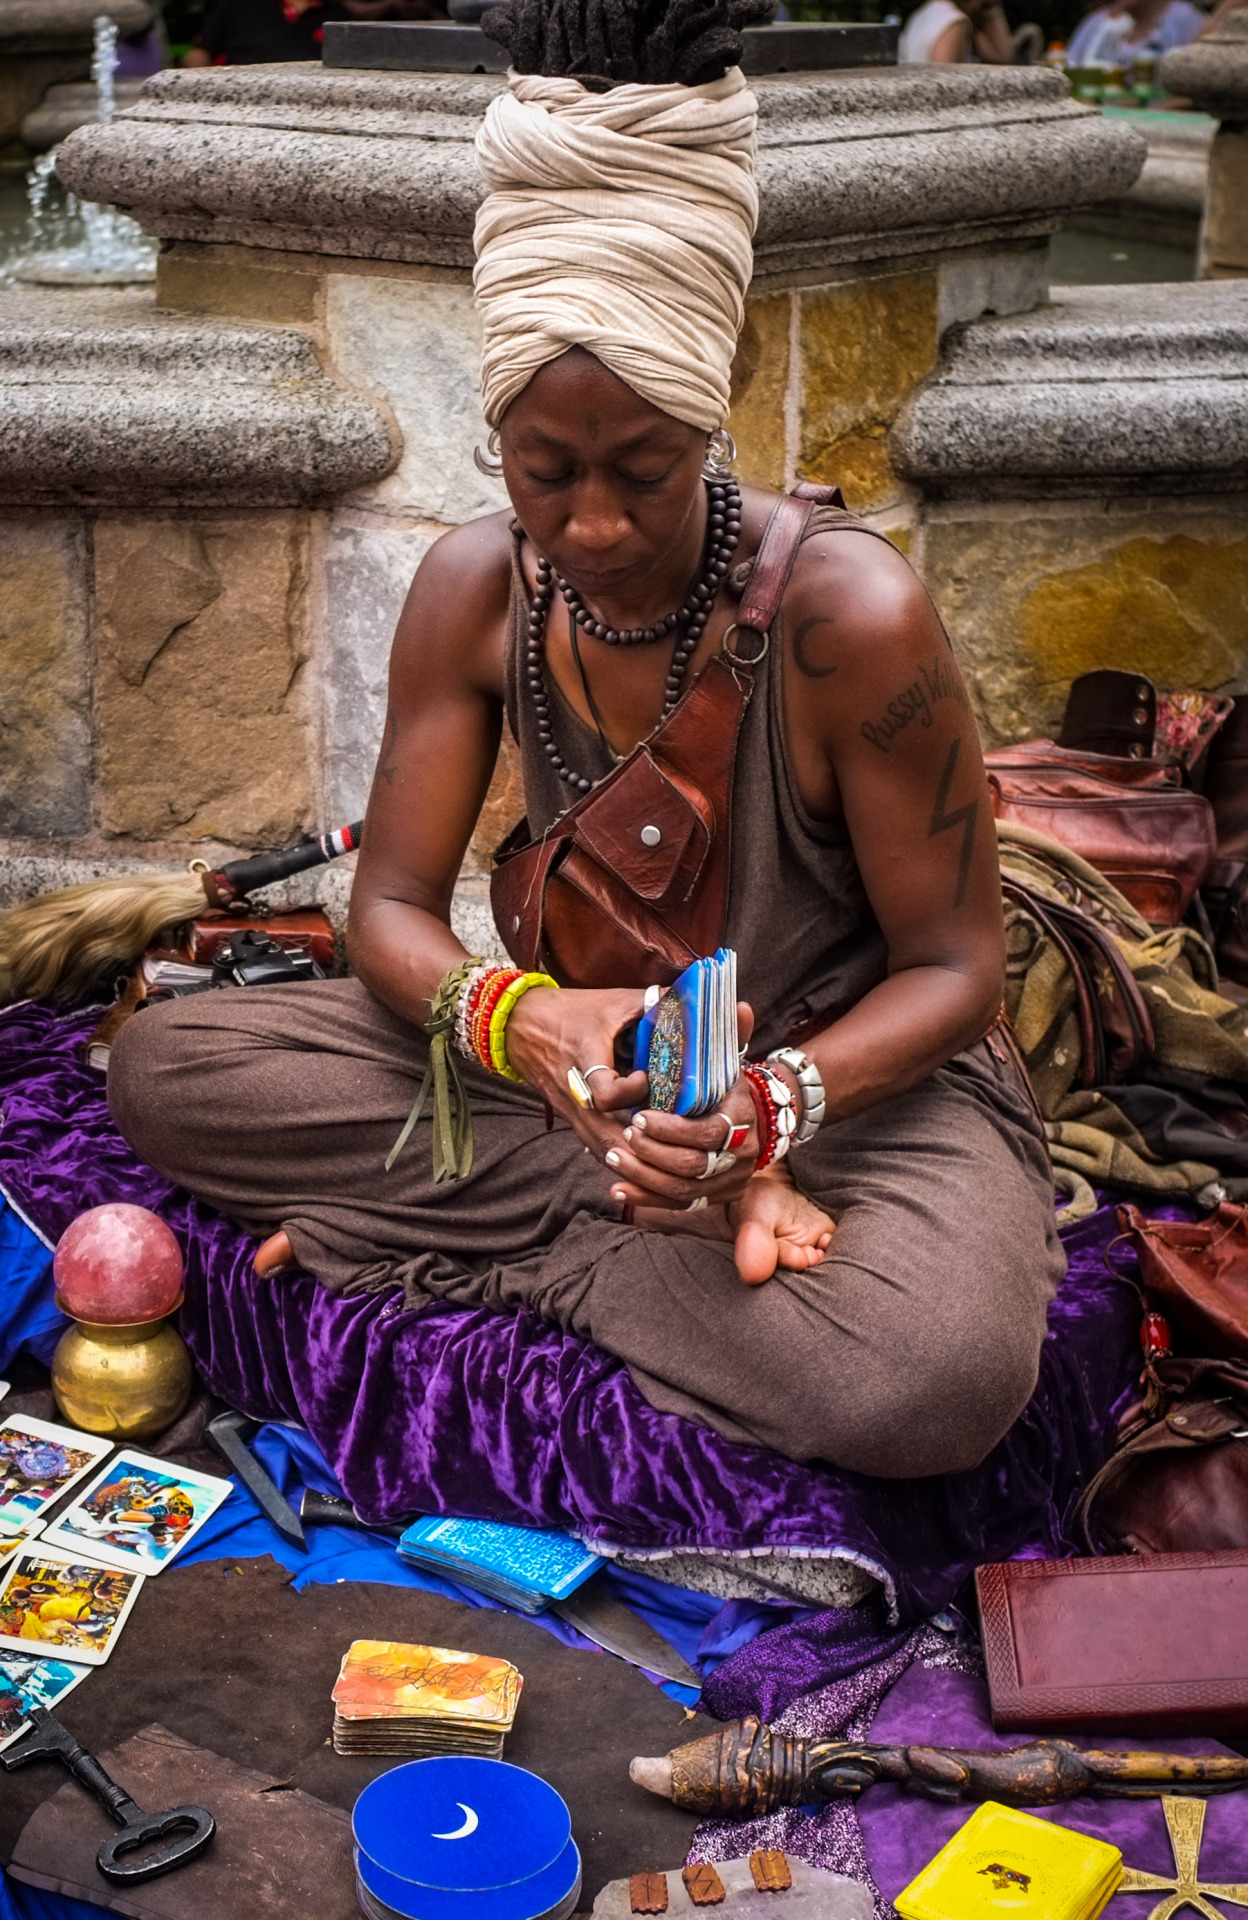 Union Square Fortune Teller